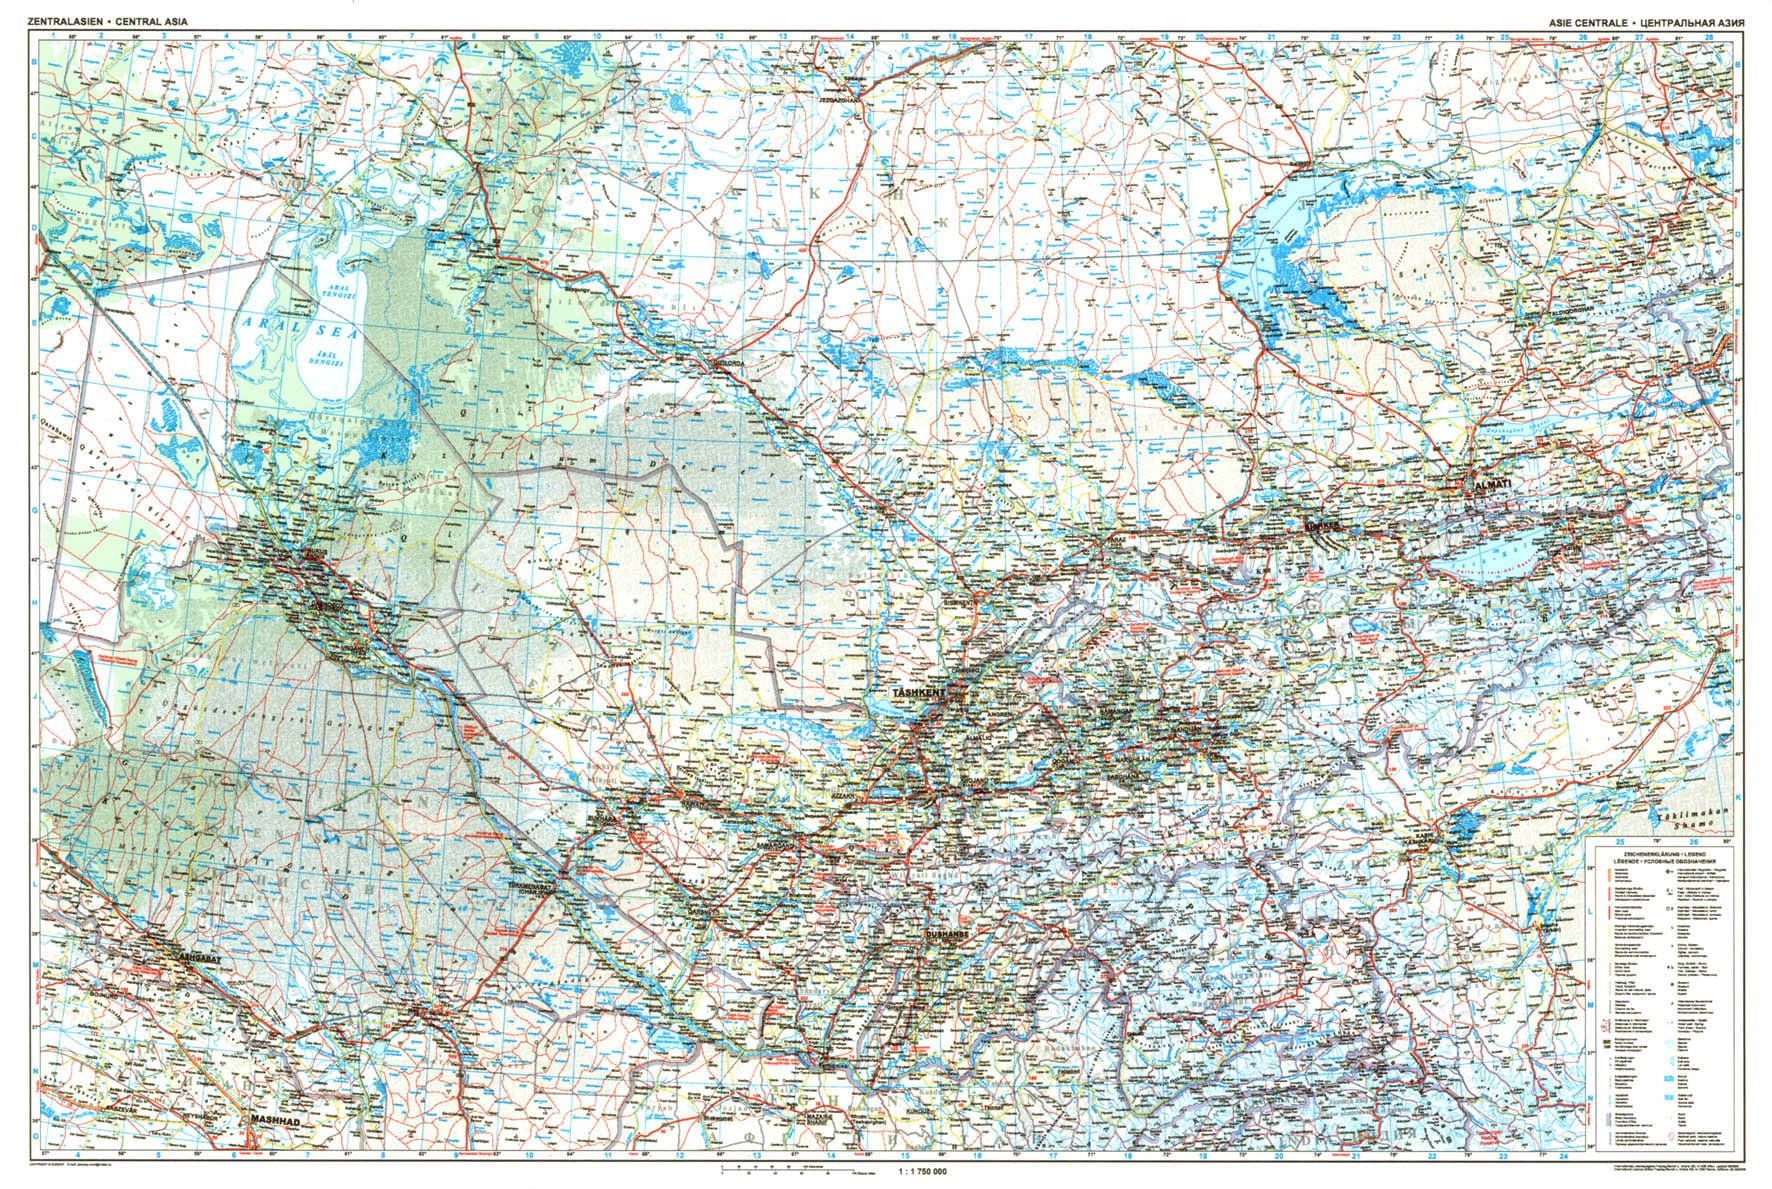 Central Asia Road Wall Map - Asia - Asia - Wall Maps